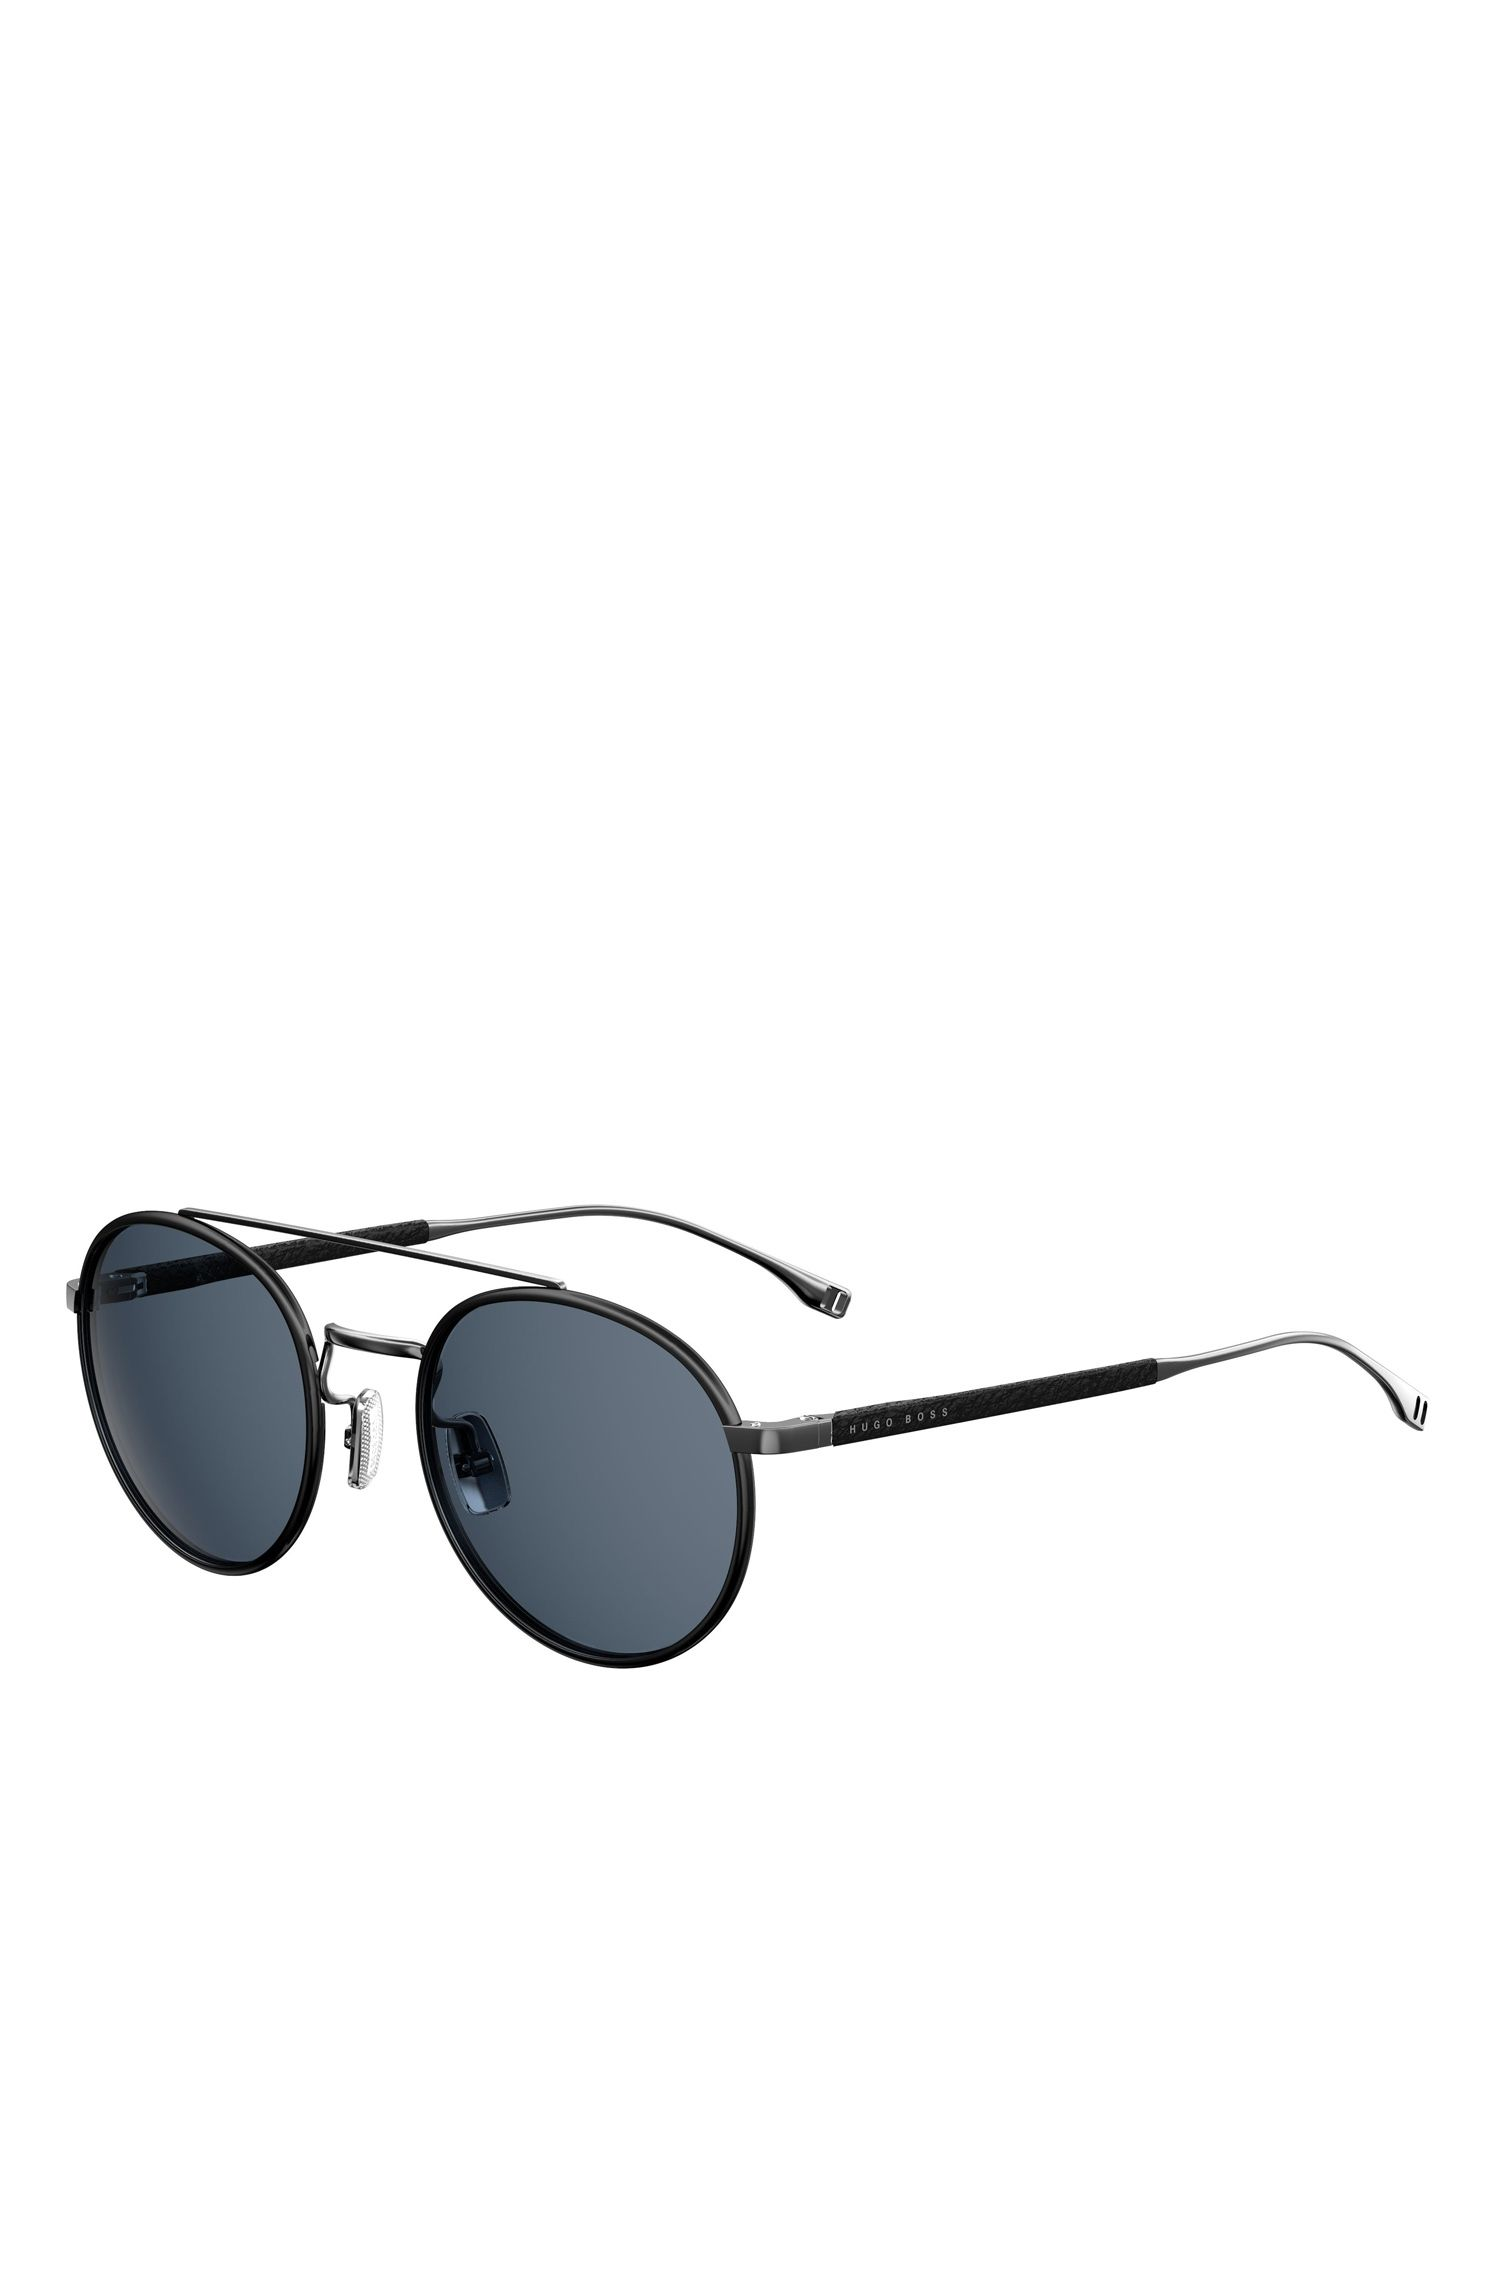 Black Lens Round Leather Wrapped Sunglasses | BOSS 0886S, Assorted-Pre-Pack